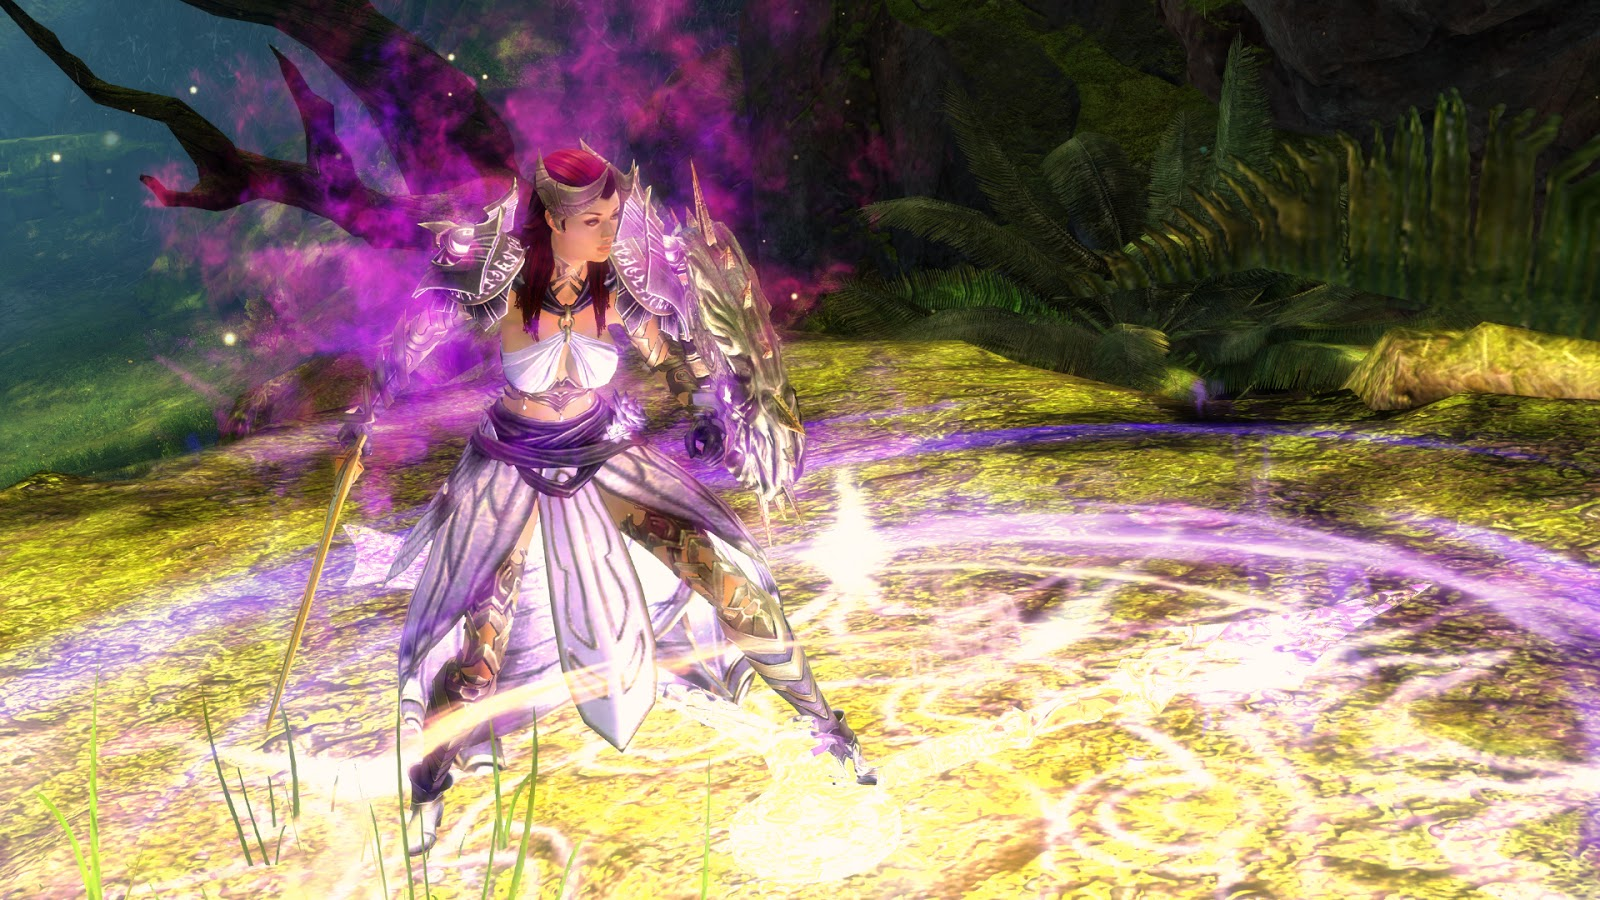 Guild wars 2 data october 2015 guild wars 2 guide chronomancer tutorial from a long time mesmer only player includes continuum splitshift tricks by l4in malvernweather Choice Image